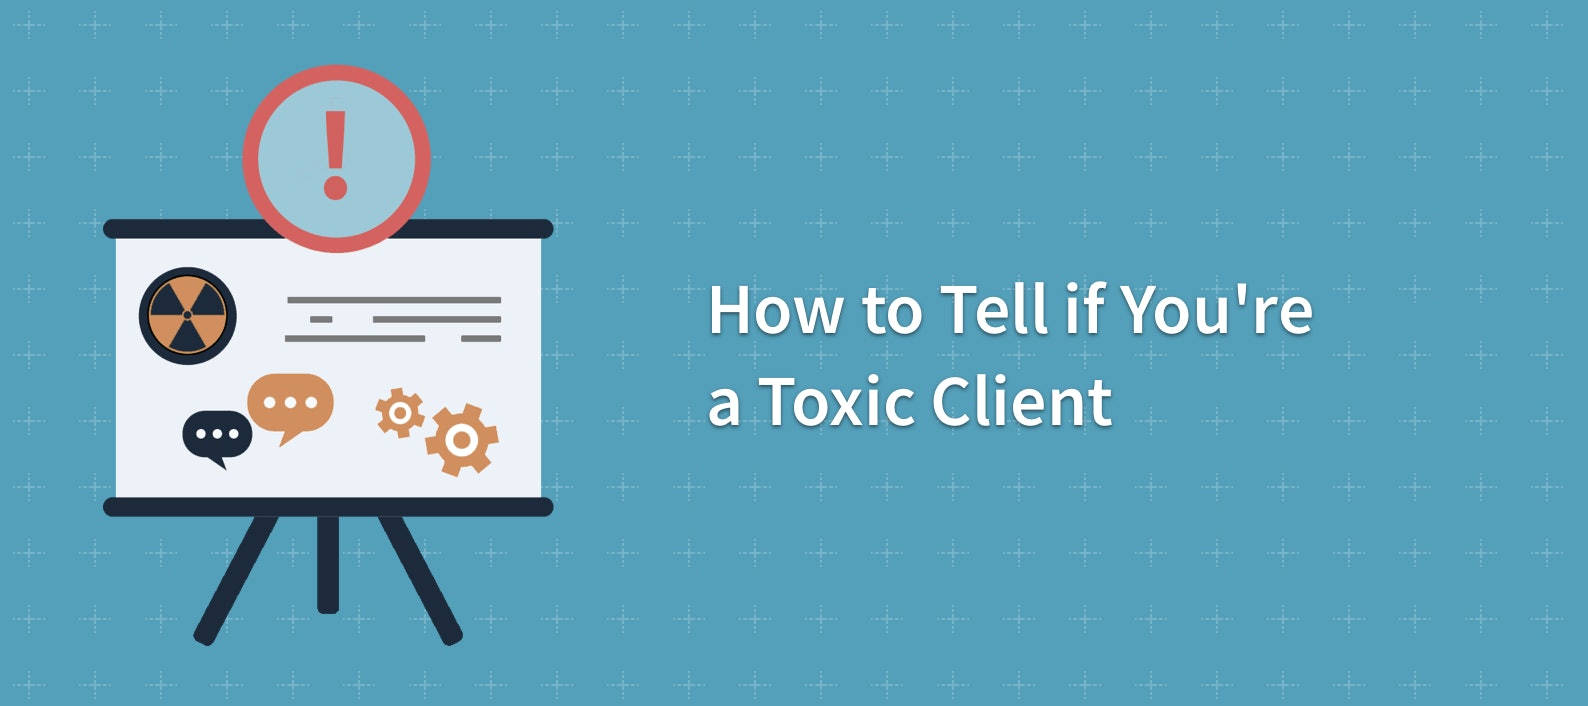 How to Tell If You're a Toxic Client